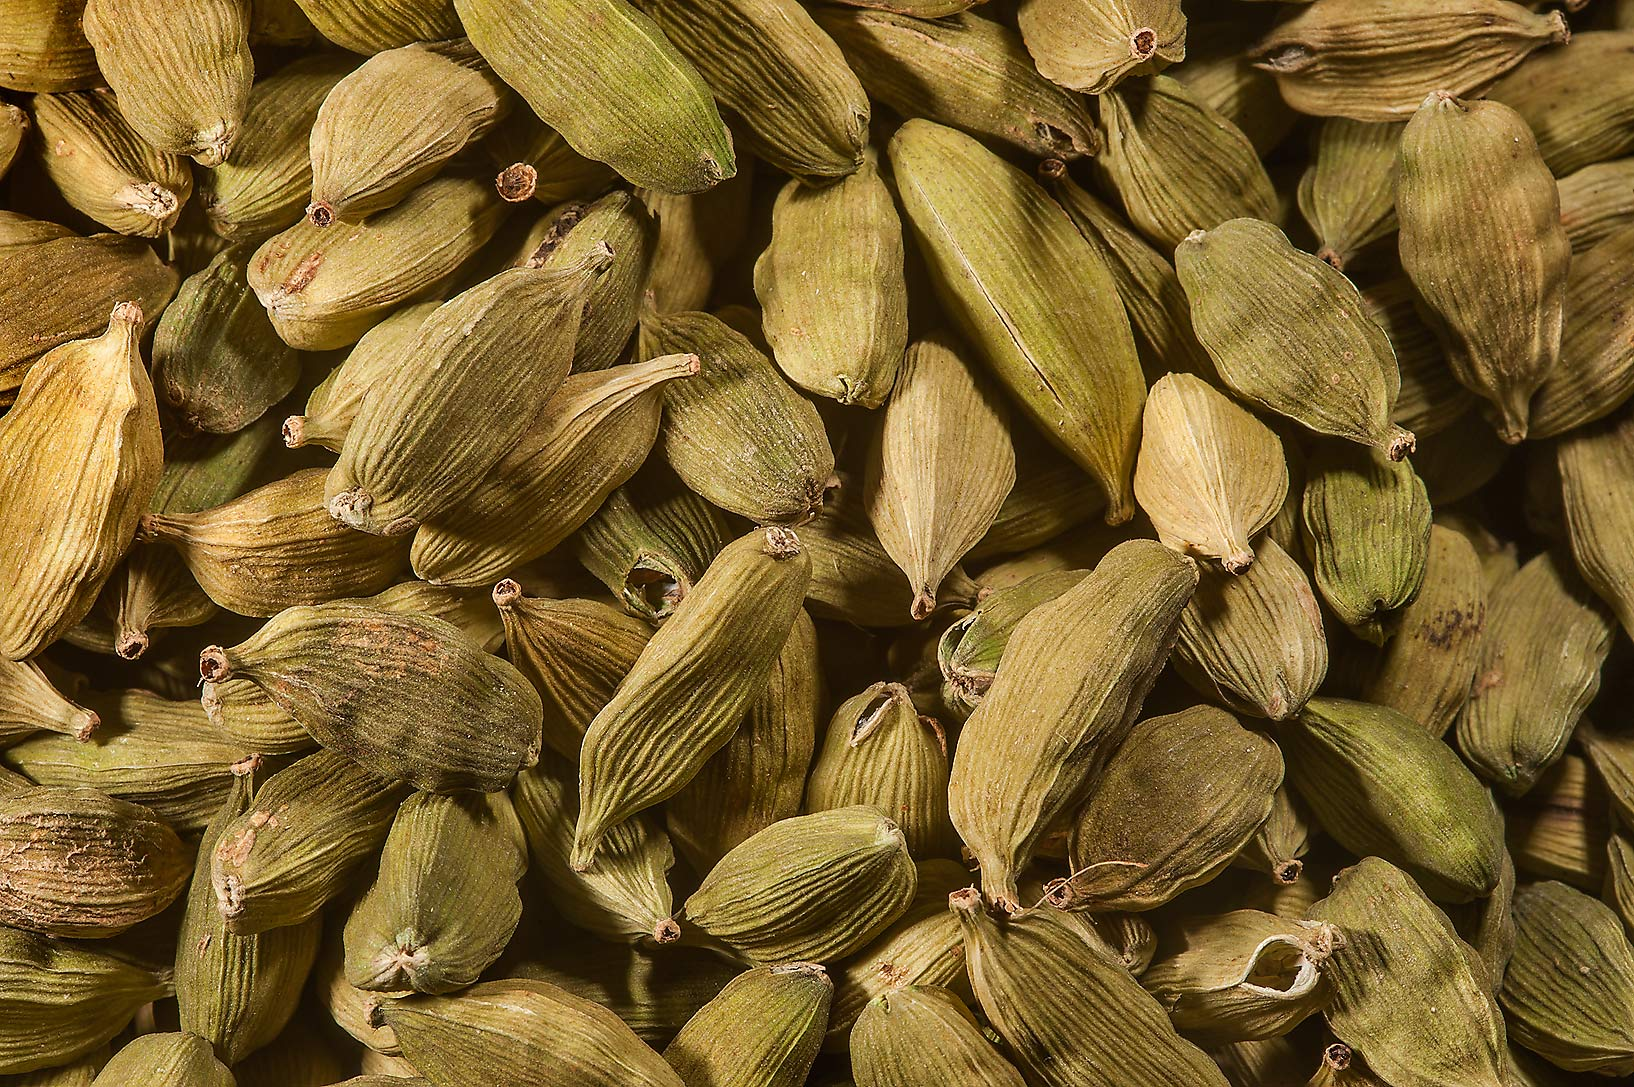 Cardamom seeds in spice section in Souq Waqif (Old Market). Doha, Qatar